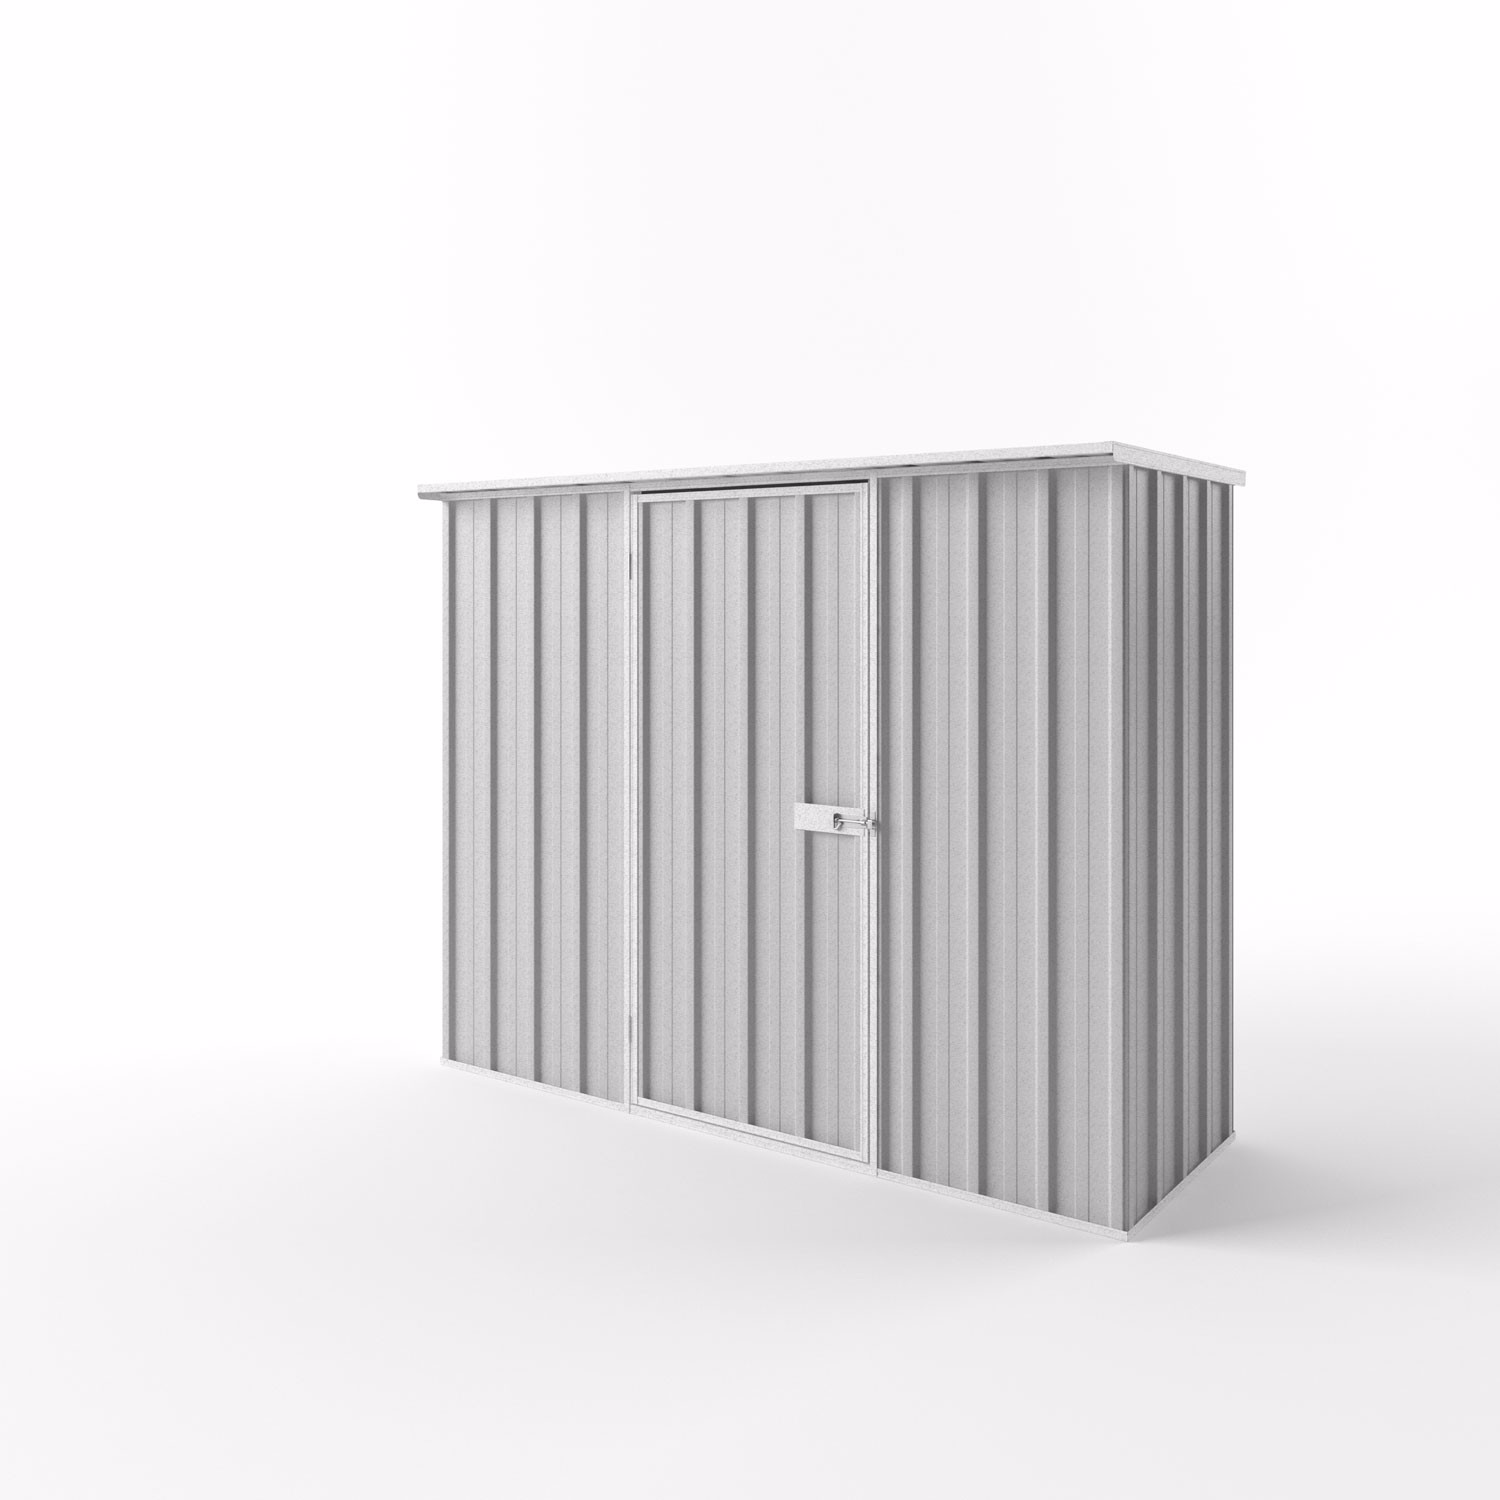 Flat Roof Garden Shed - 2.25m x 0.78m x 1.82m Height - Wide Span Sheds